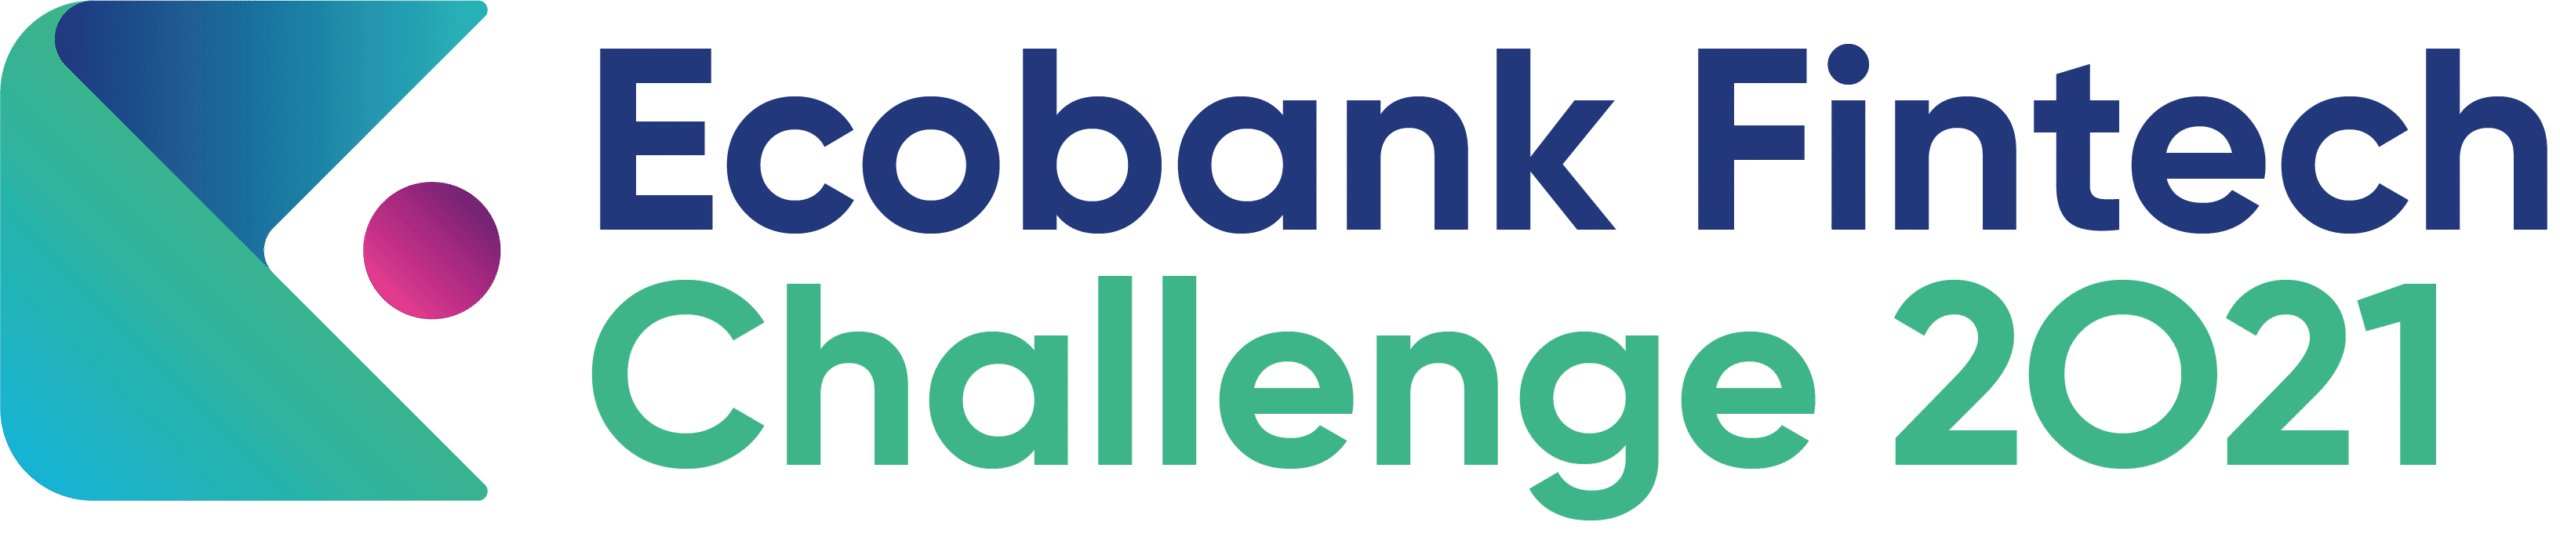 EcoBank Fintech Challenge 2021 for Programmers and Developers in Africa